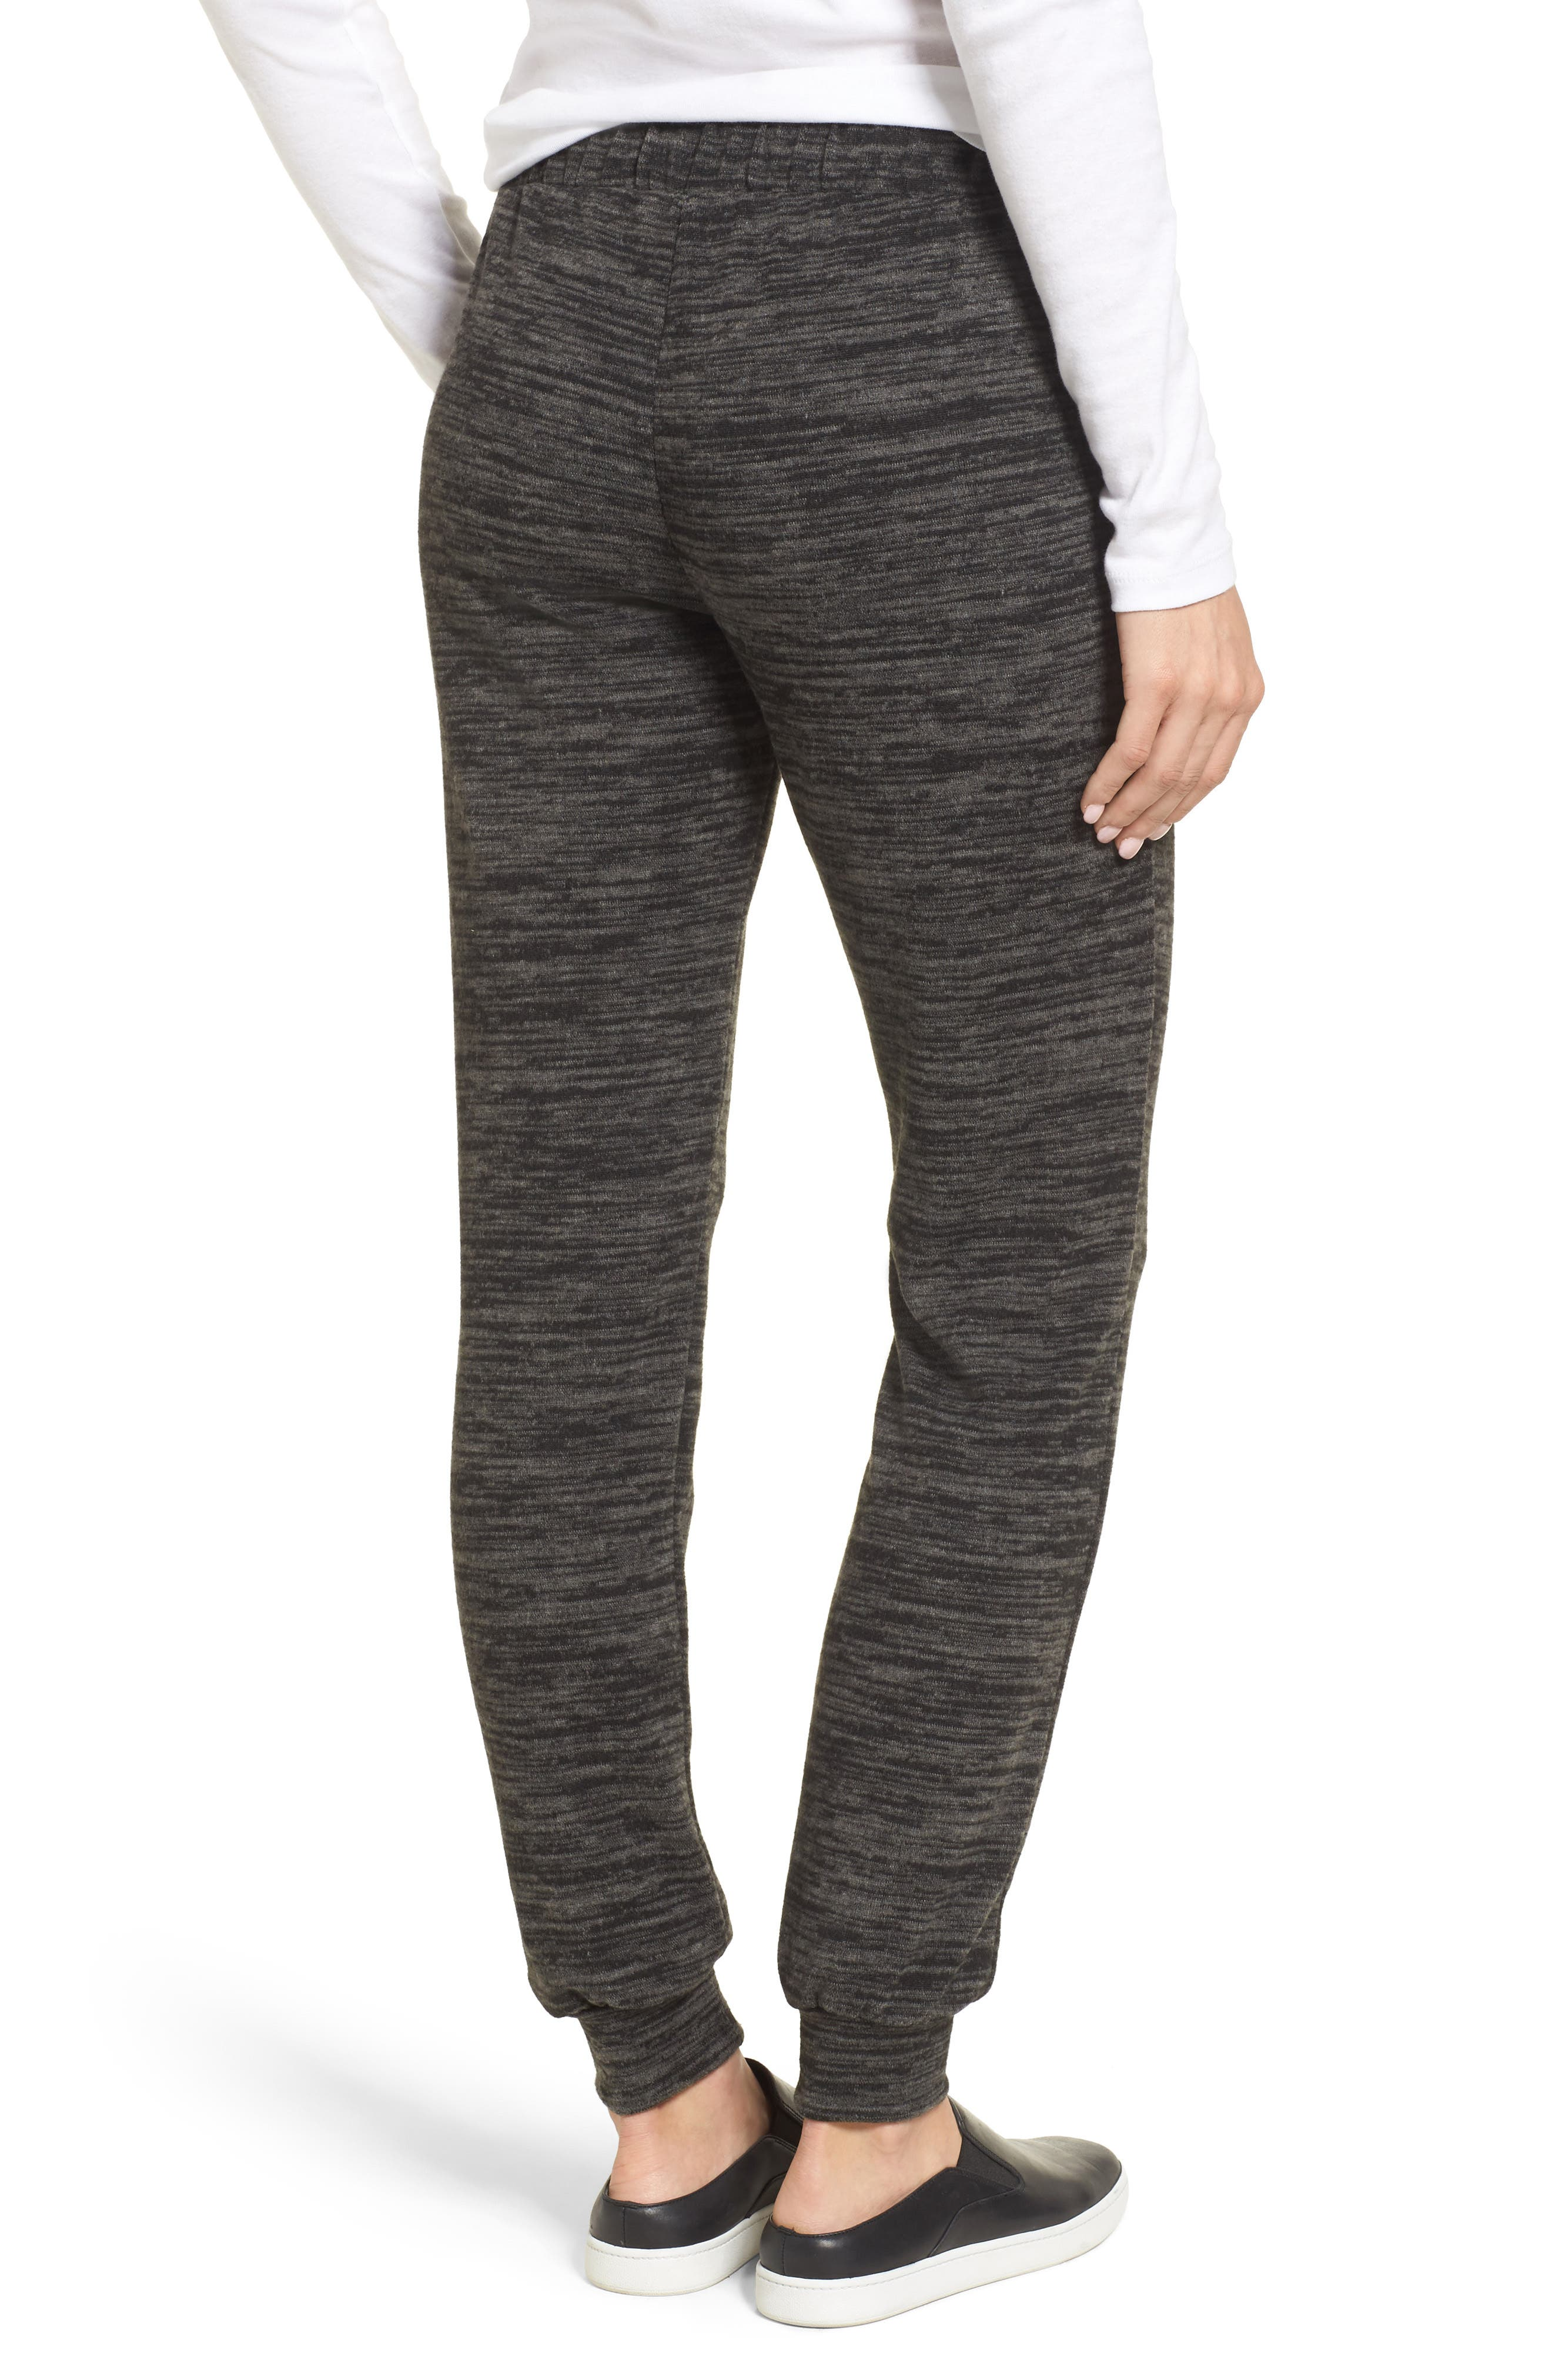 Cozy Jogger Pants,                             Alternate thumbnail 2, color,                             001